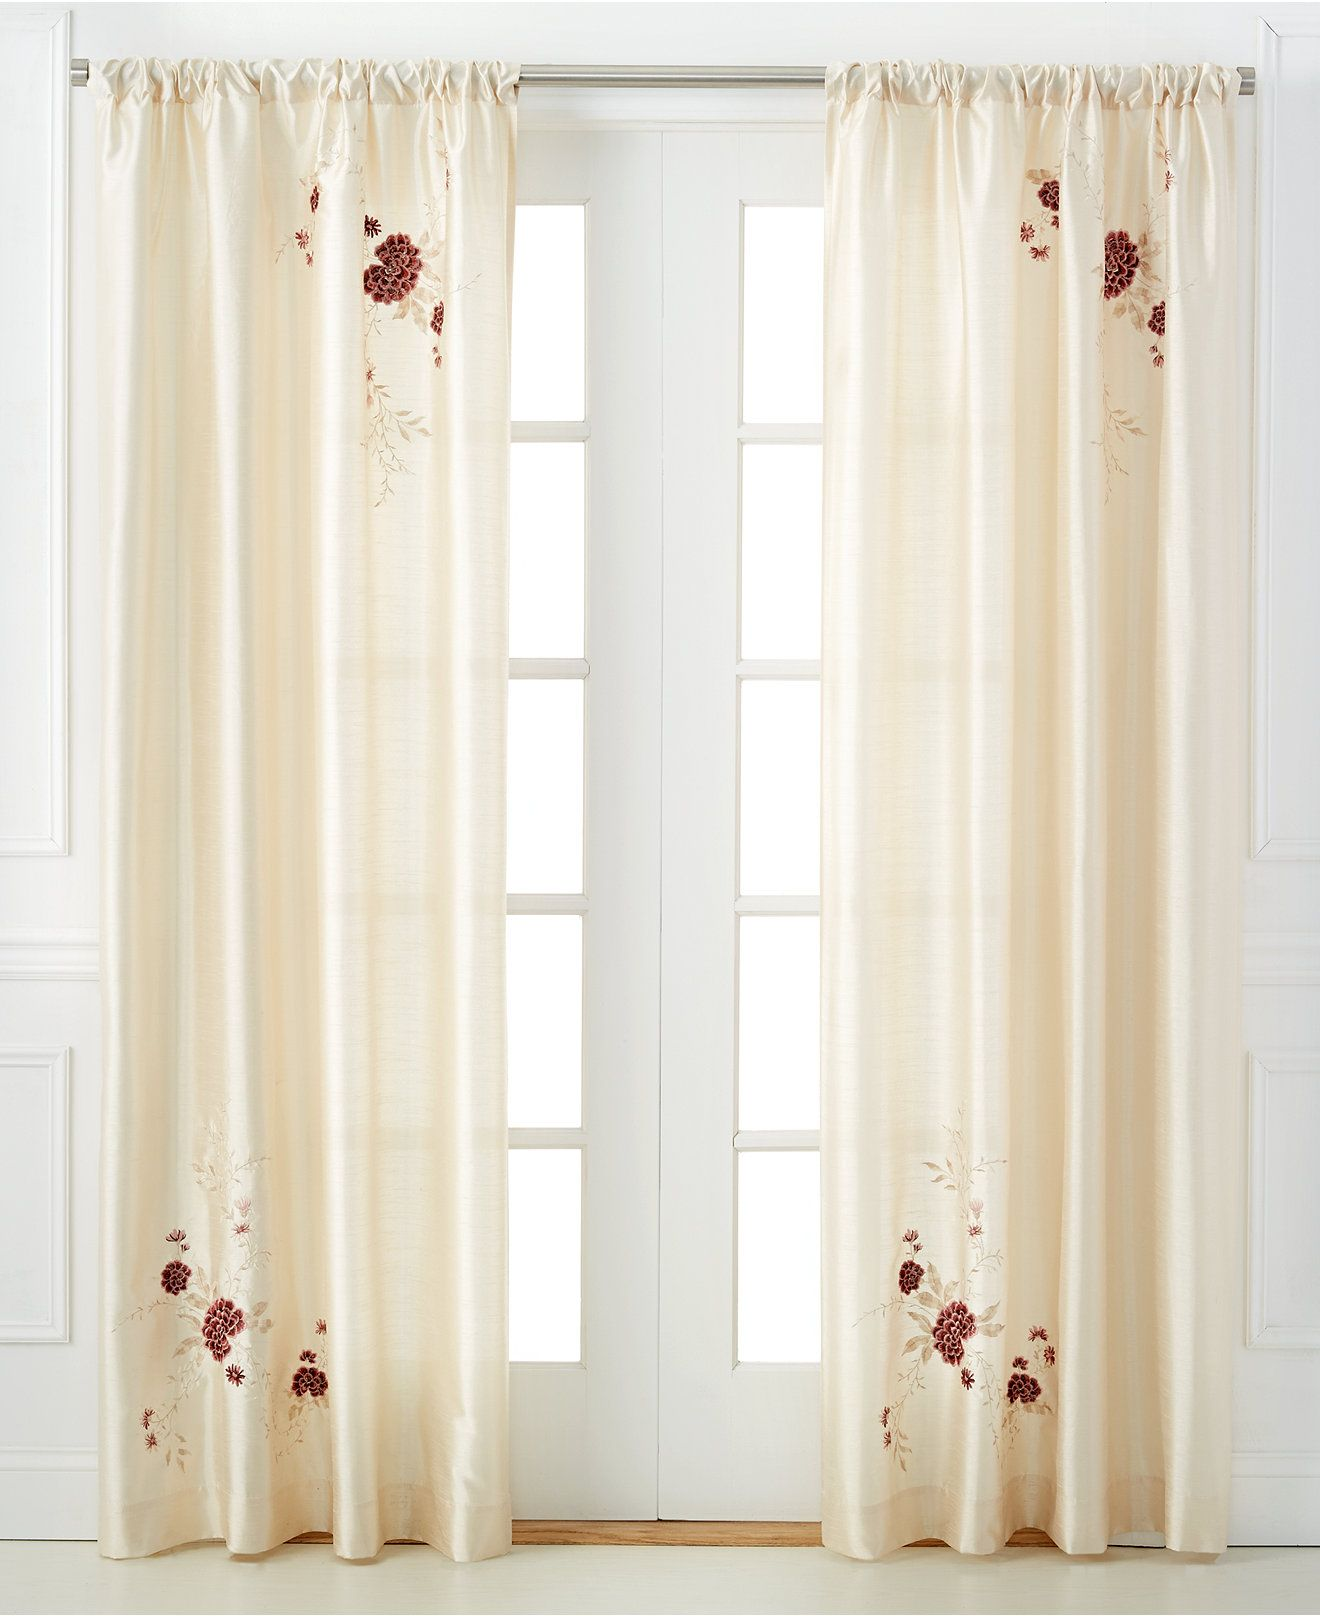 Macys Curtains For Living Room Chf Peri Alessandra Window Treatment Collection Curtains